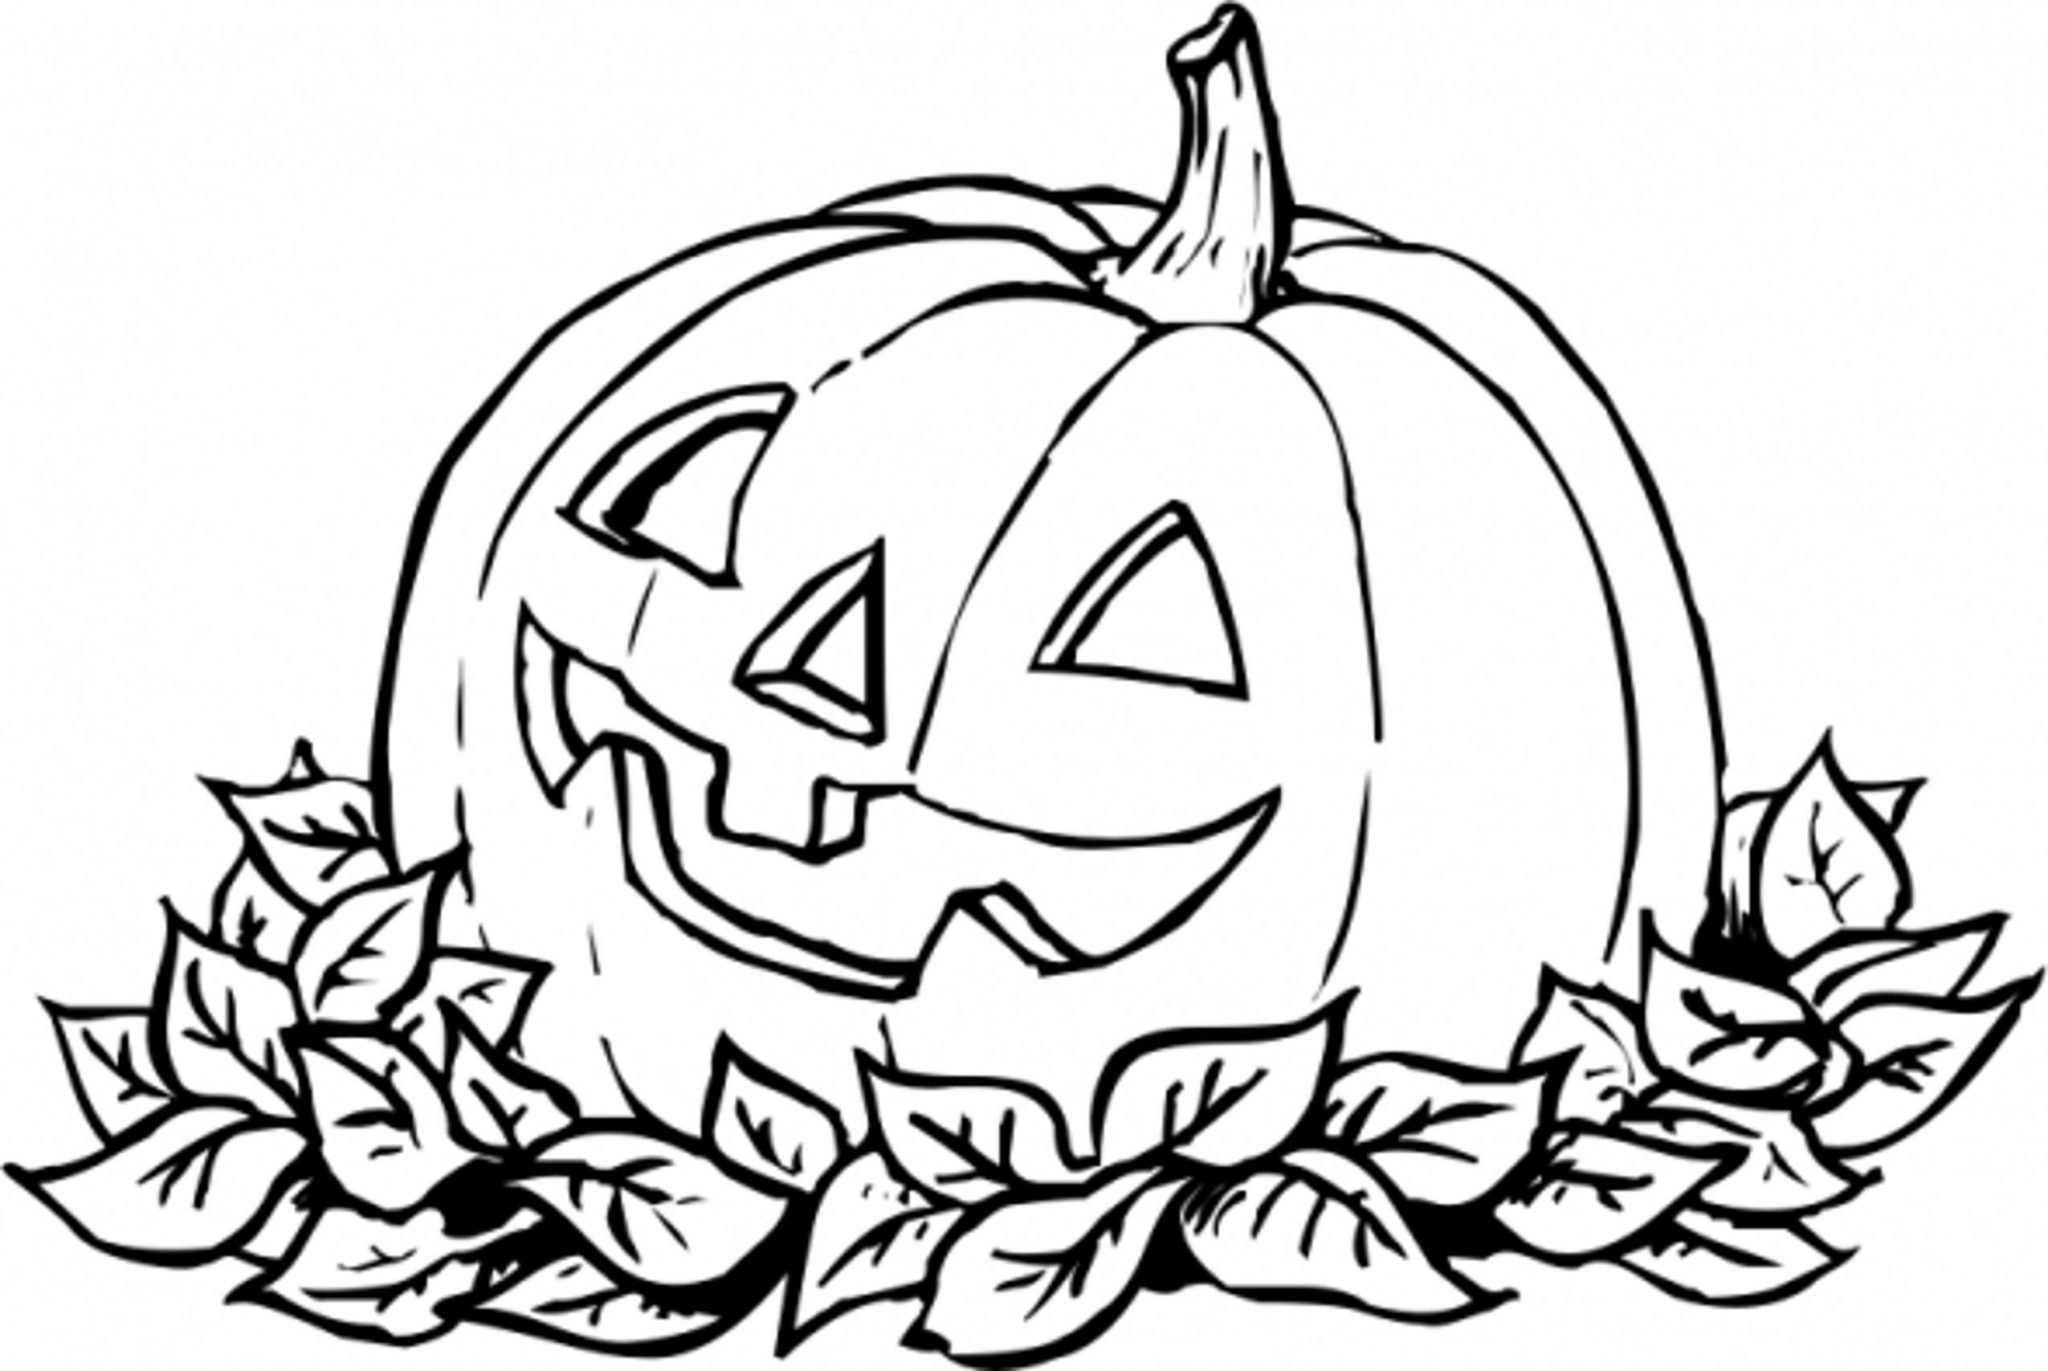 free printable pictures of pumpkins free printable pumpkin coloring pages for kids cool2bkids pictures pumpkins of printable free